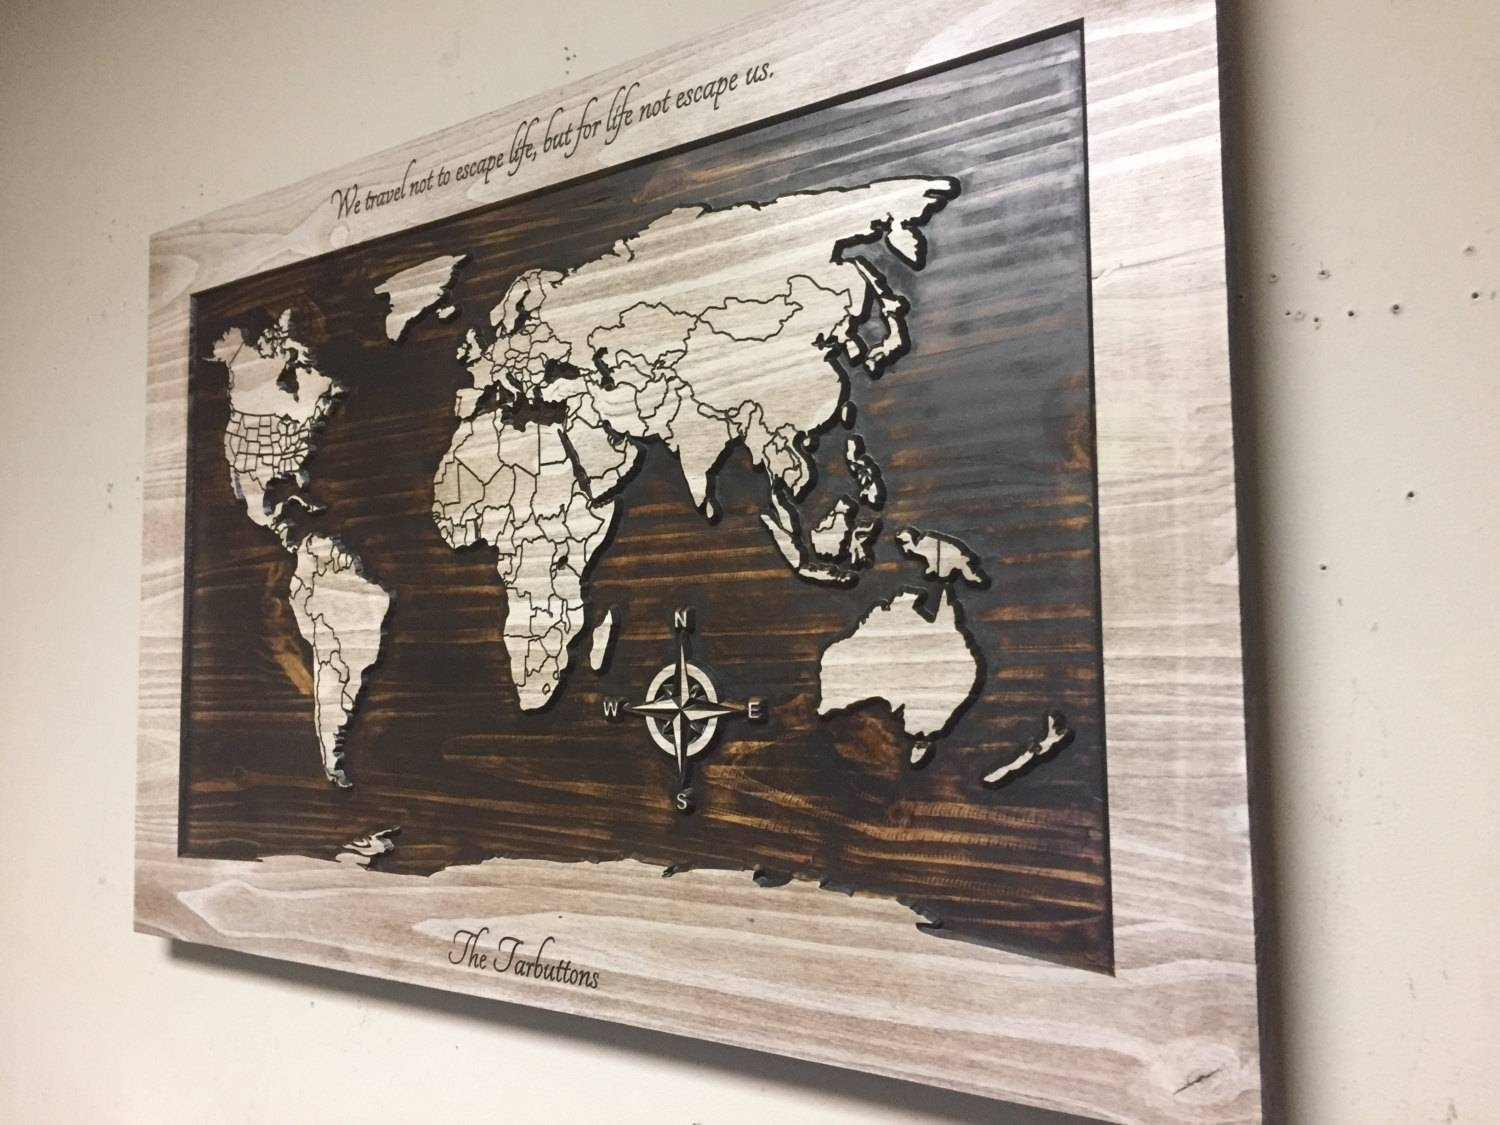 Wood Wall Art World Map Wall Art Carved Wooden World Map Intended For 2018 Us Map Wall Art (View 11 of 20)